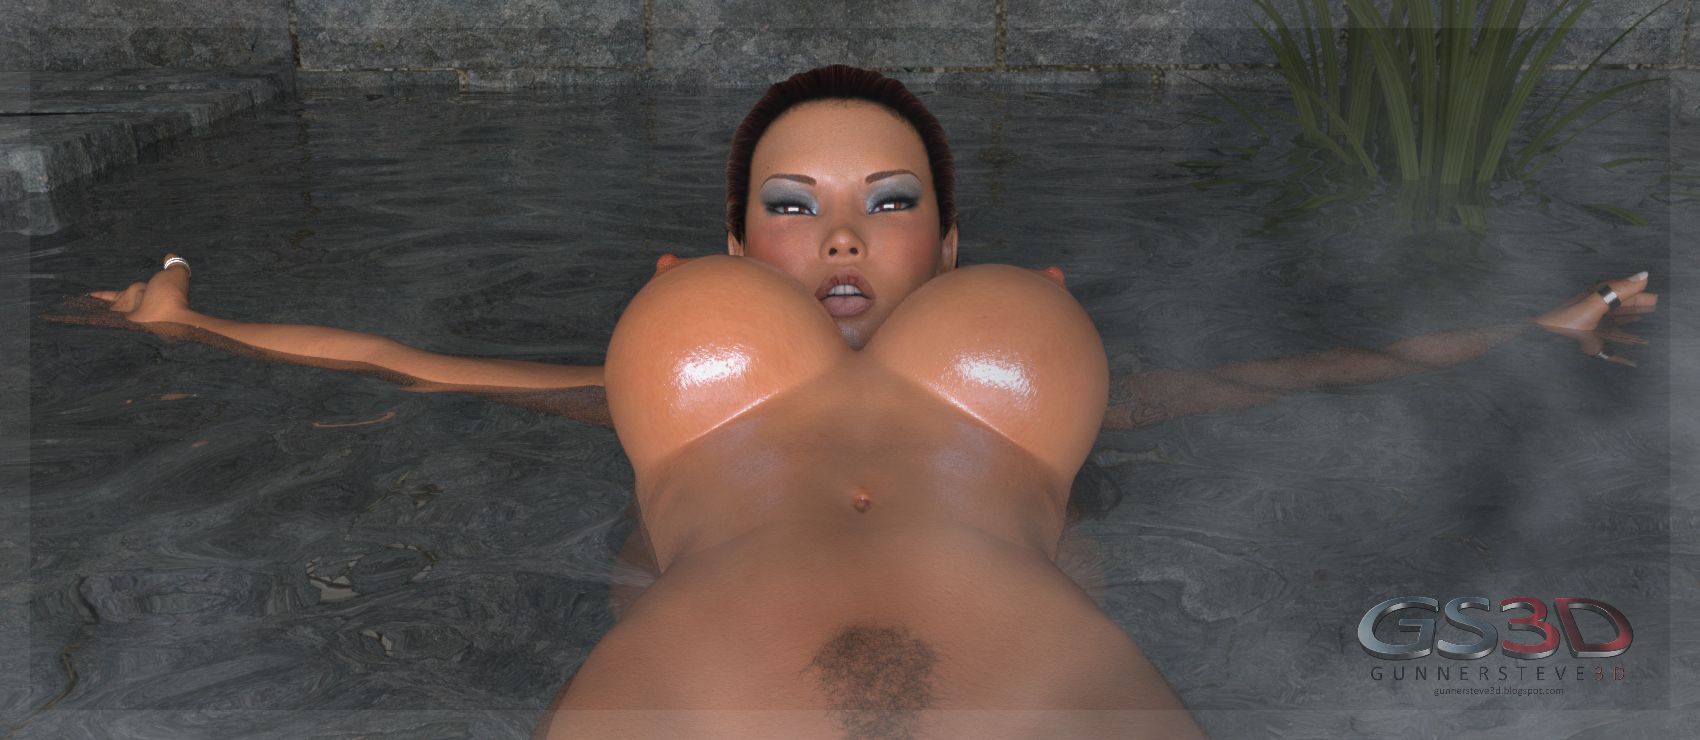 Tomb raider sex movie 3d nude gallery